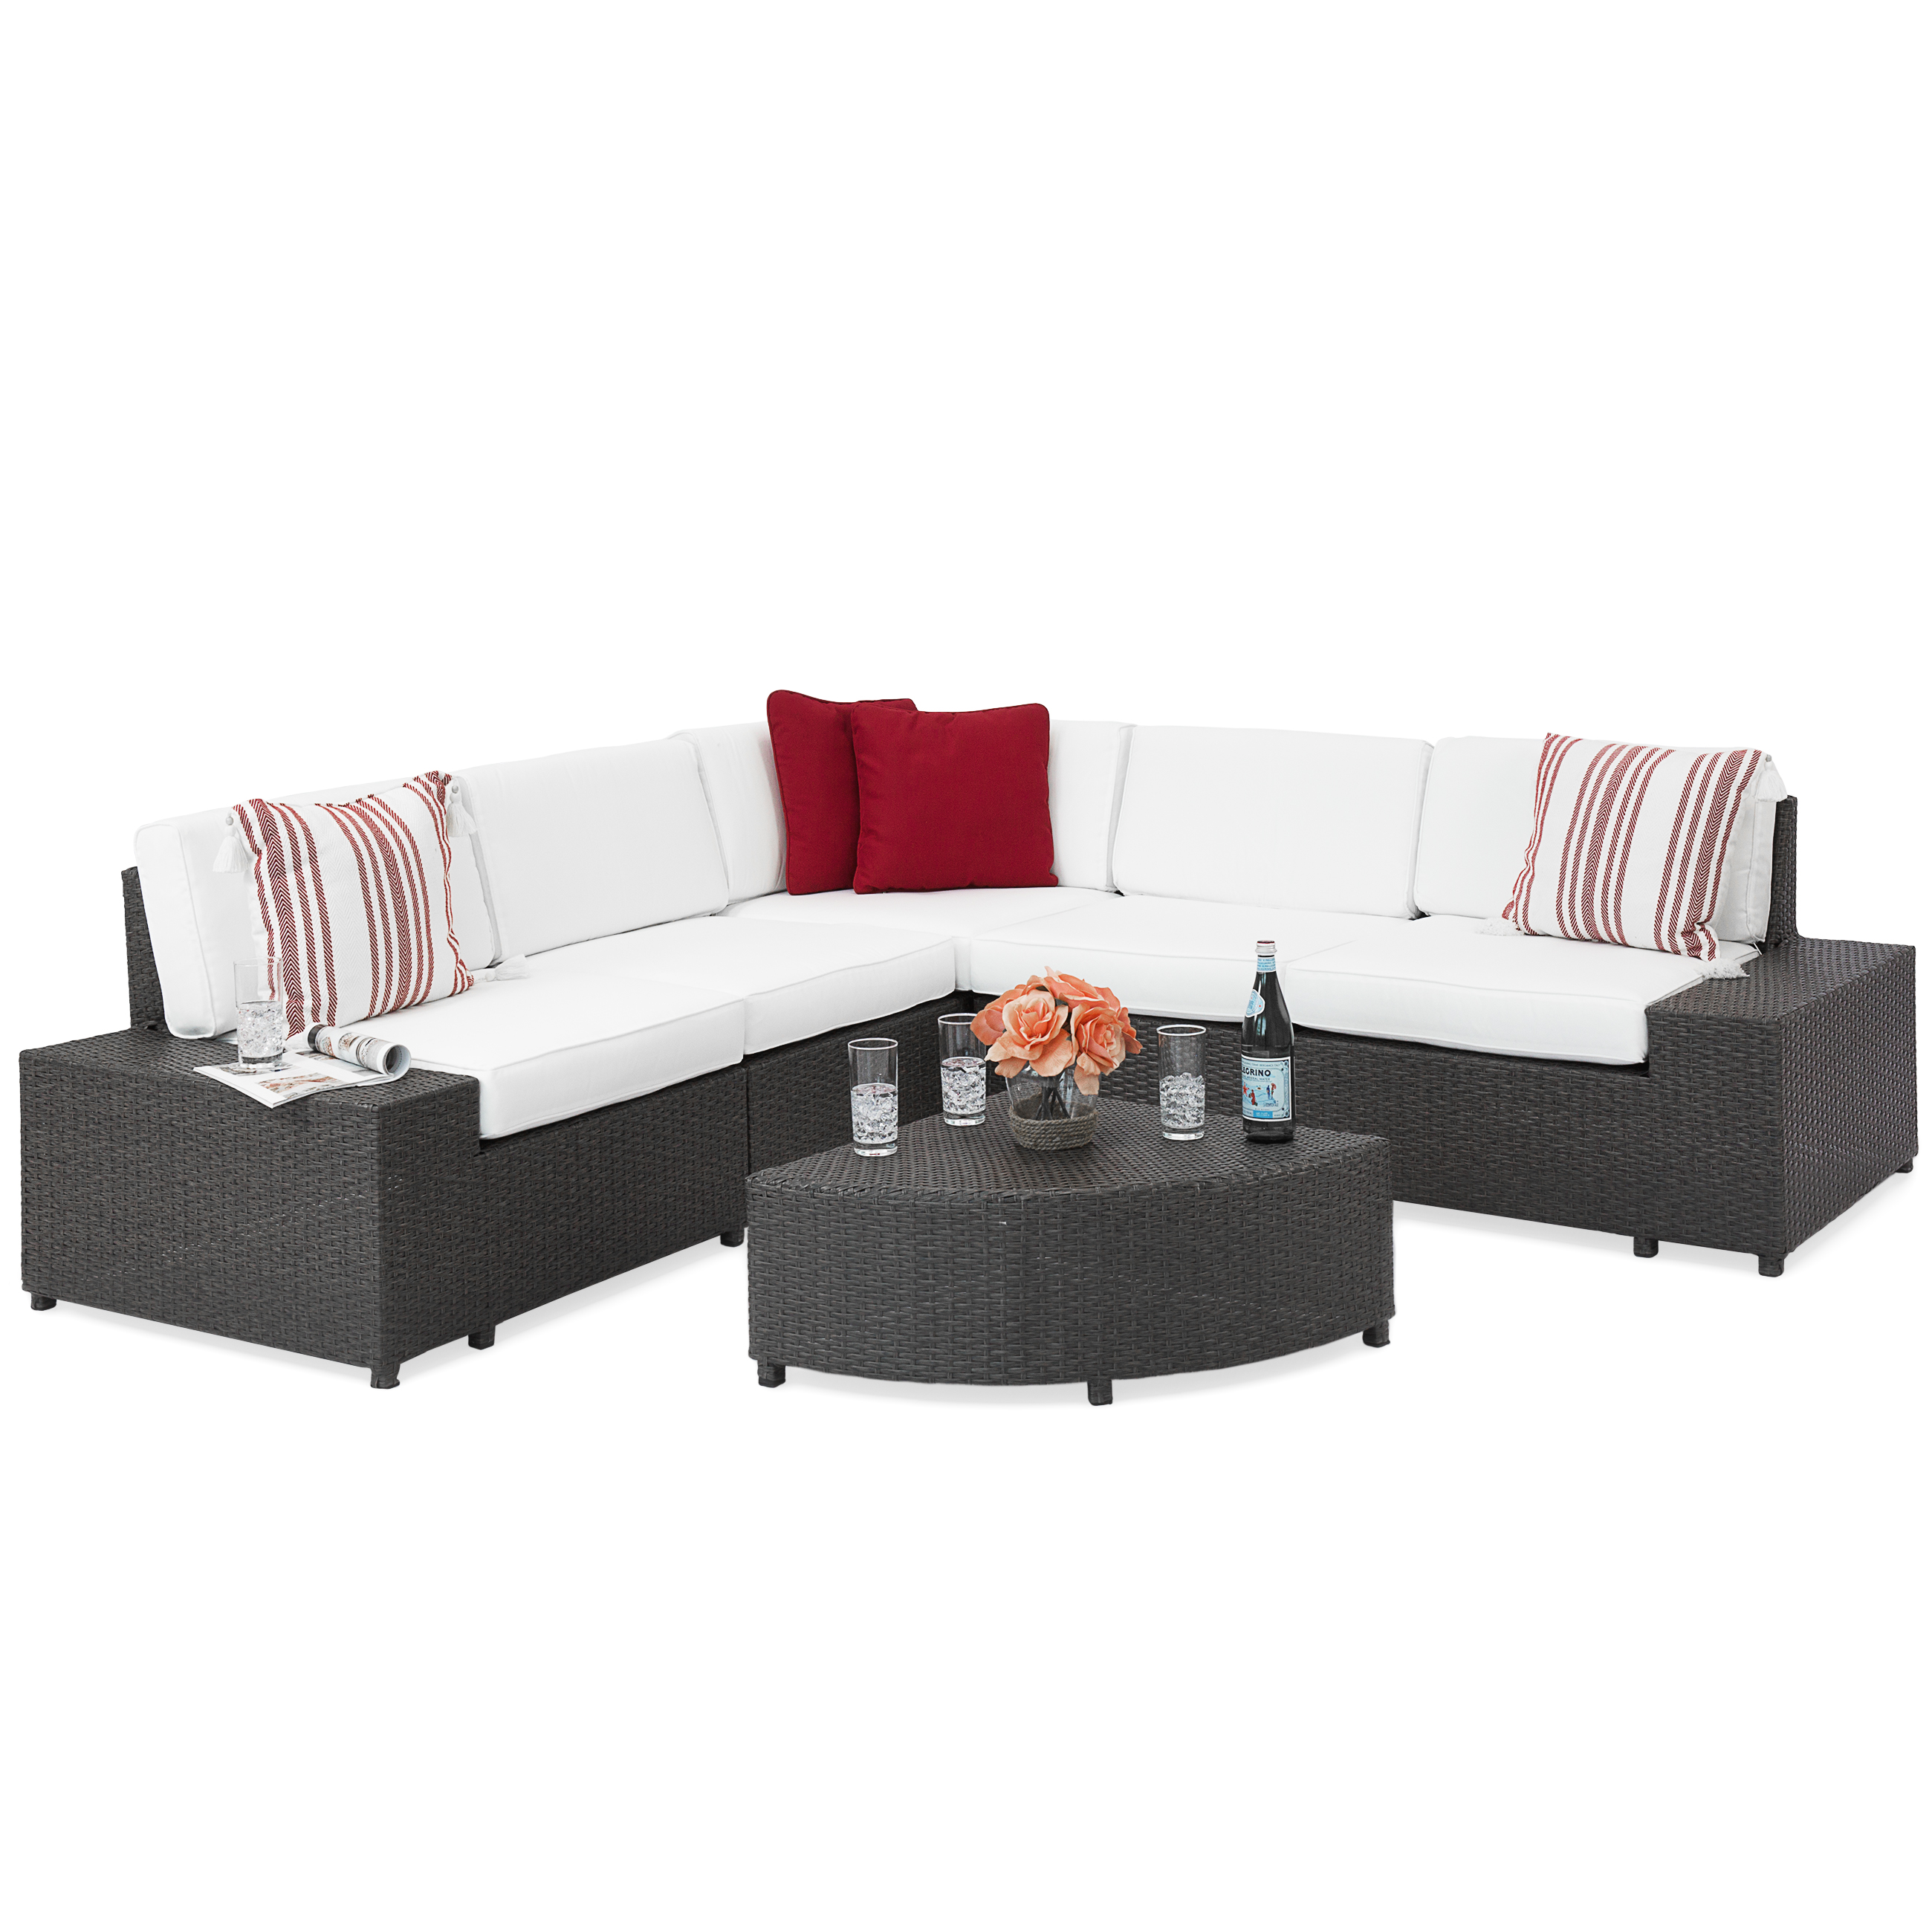 6-Pc Wicker Sectional Sofa Set w  5 Seats, Corner Coffee Table, Padded Cushions by Best Choice Products